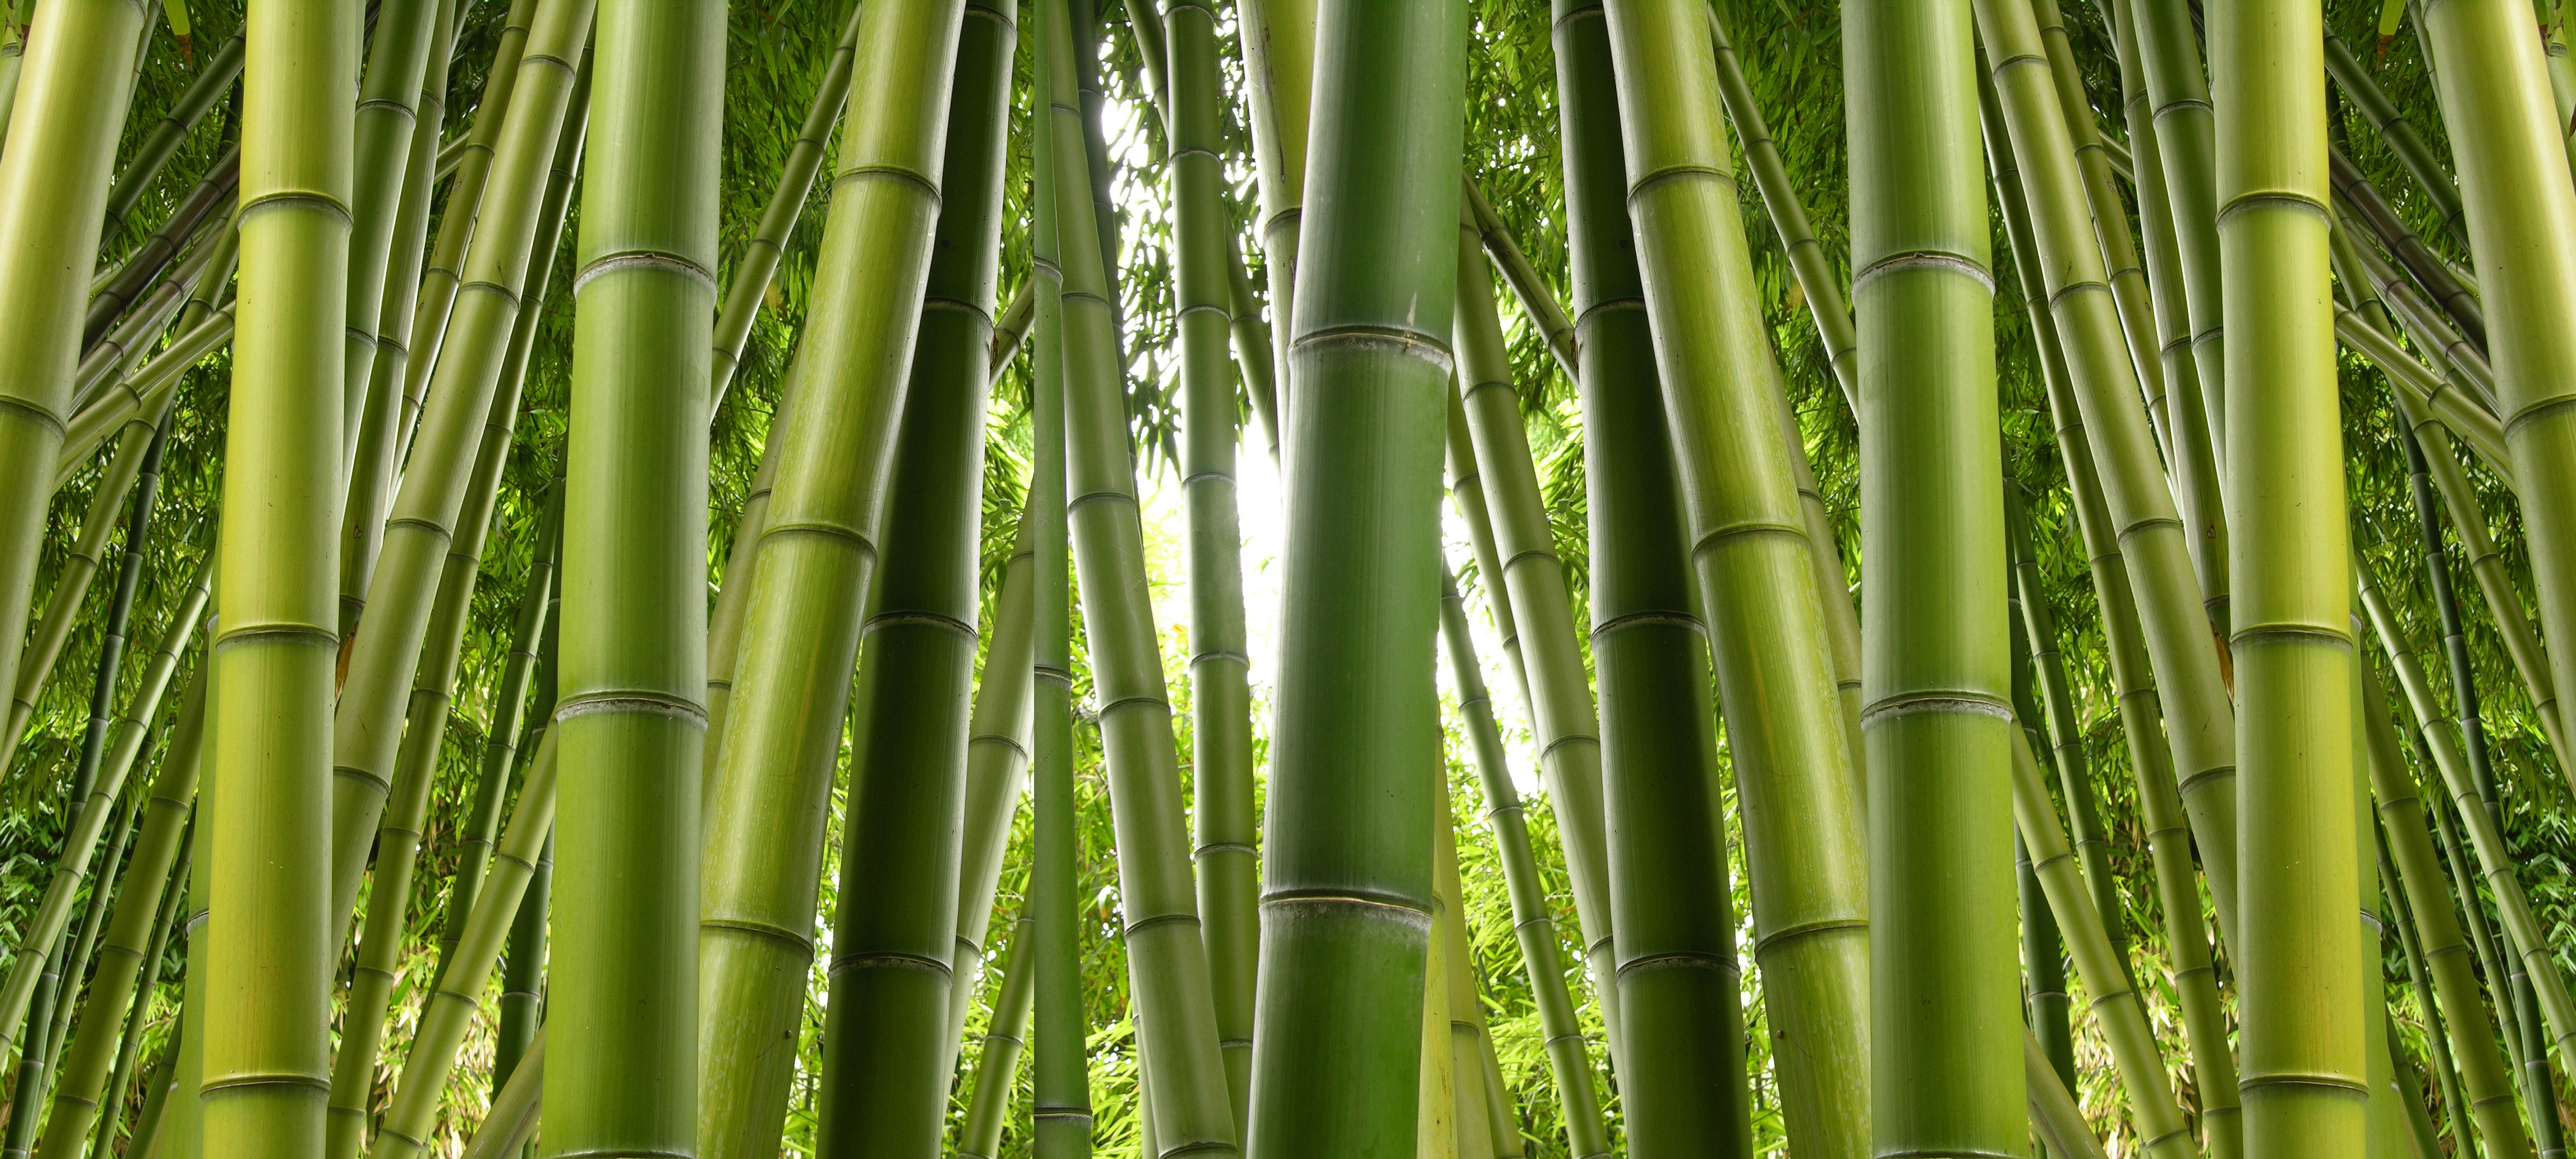 High Resolution Bamboo Wallpapers HD